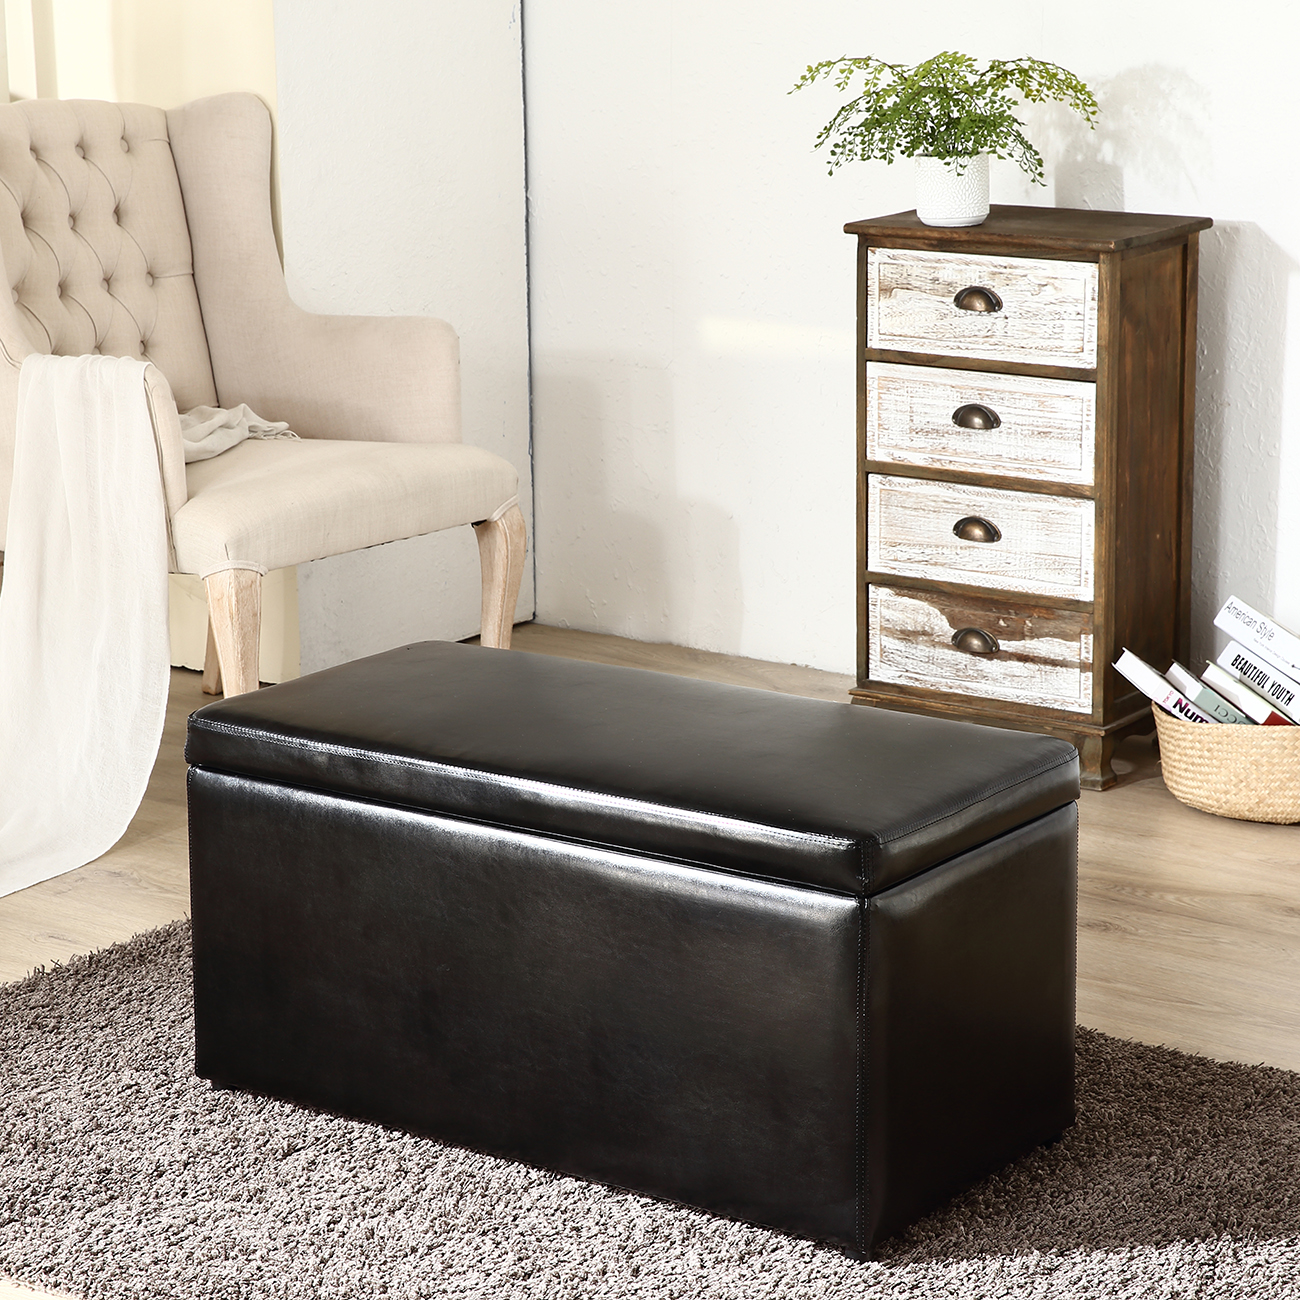 Coffee Table Footrest Storage: 3PC Ottoman Bench Storage Lid Tray Footrest Coffee Table